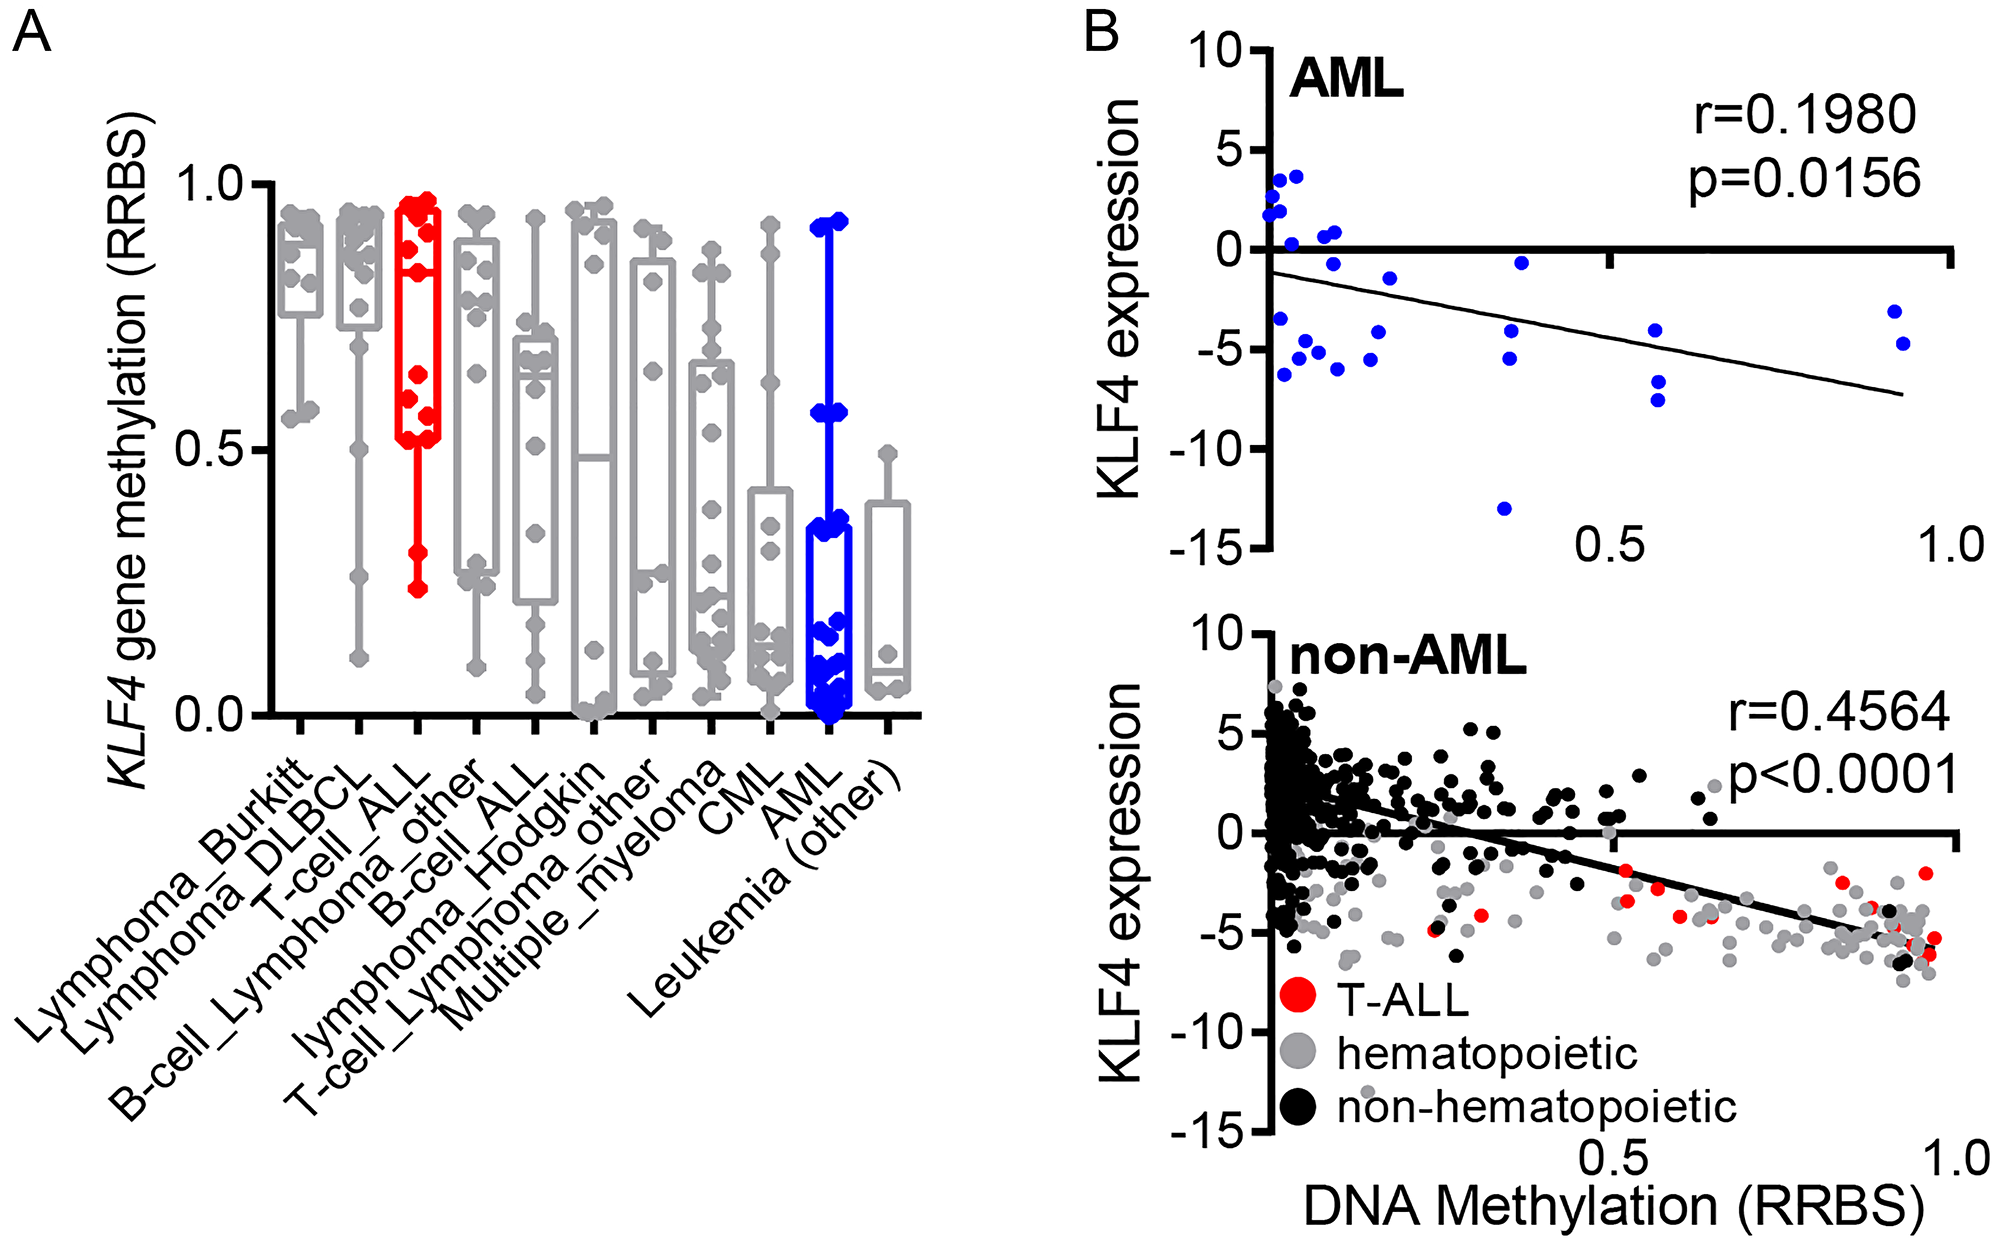 Regulation of KLF4 expression in leukemic cell lines.